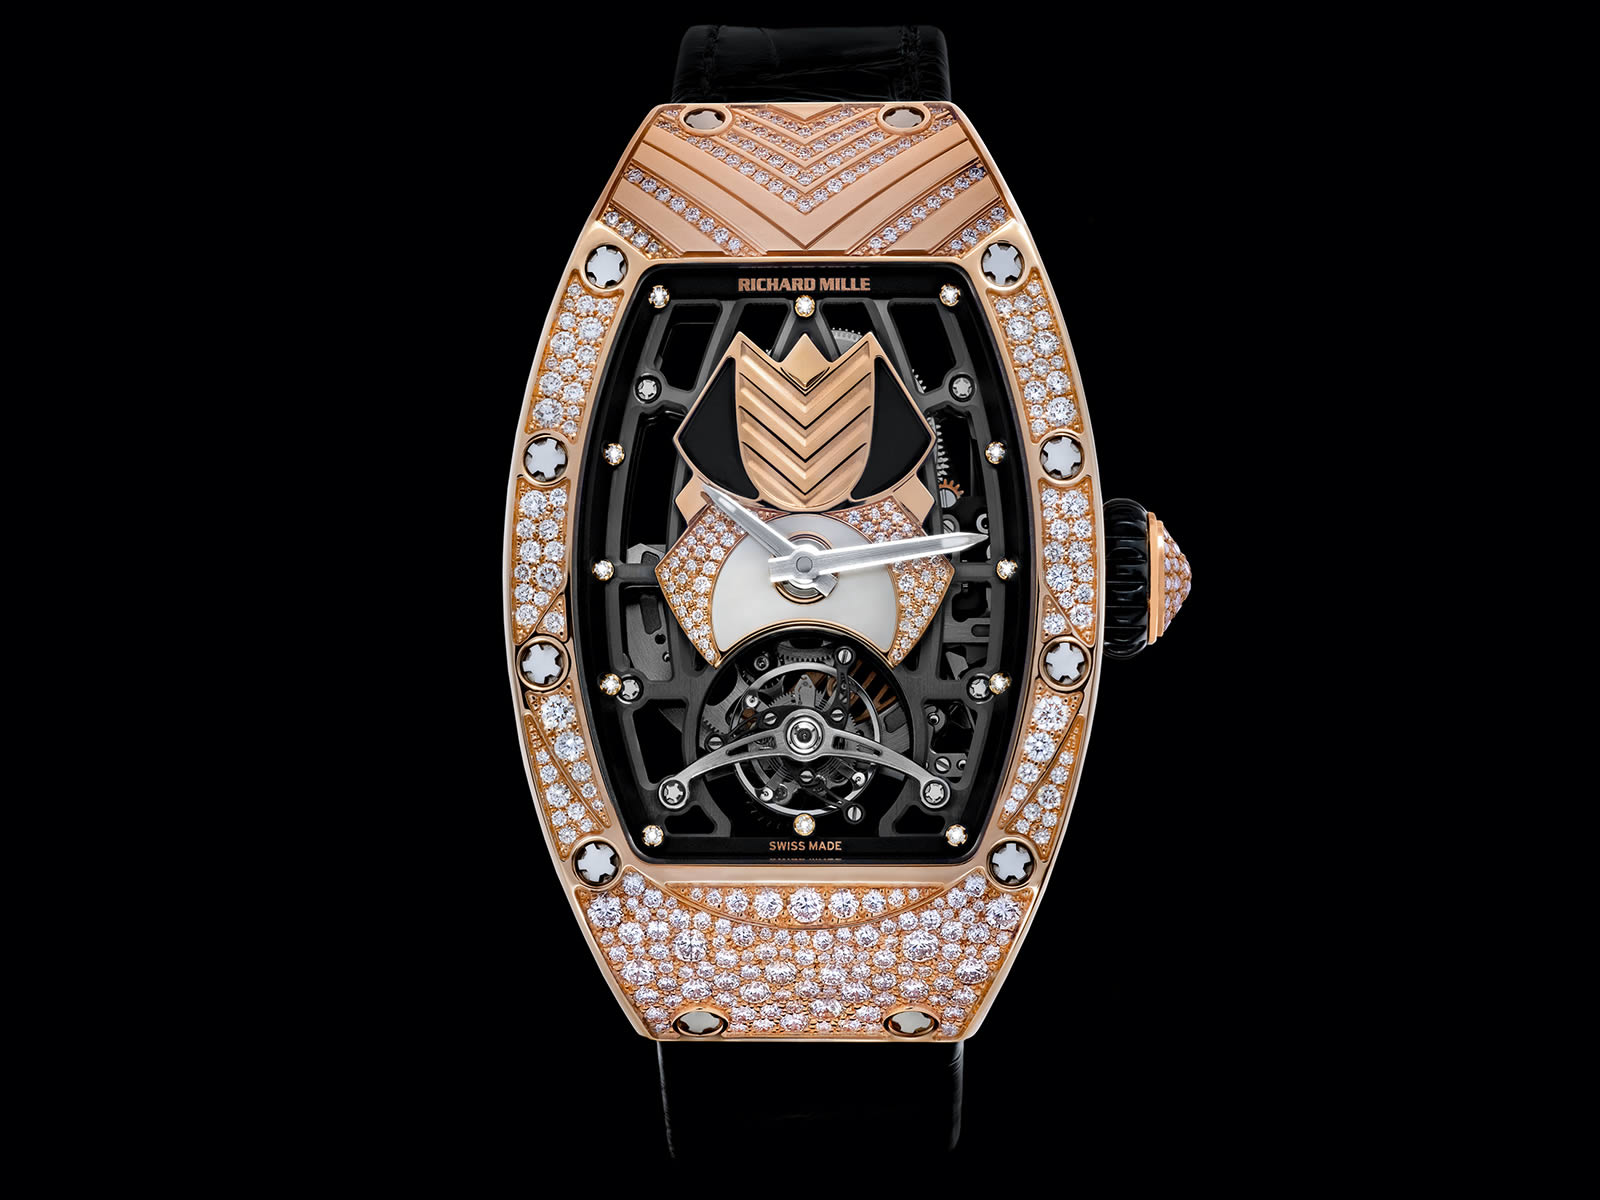 richard-mille-rm-71-01-automatic-tourbillon-talisman-21-.jpg